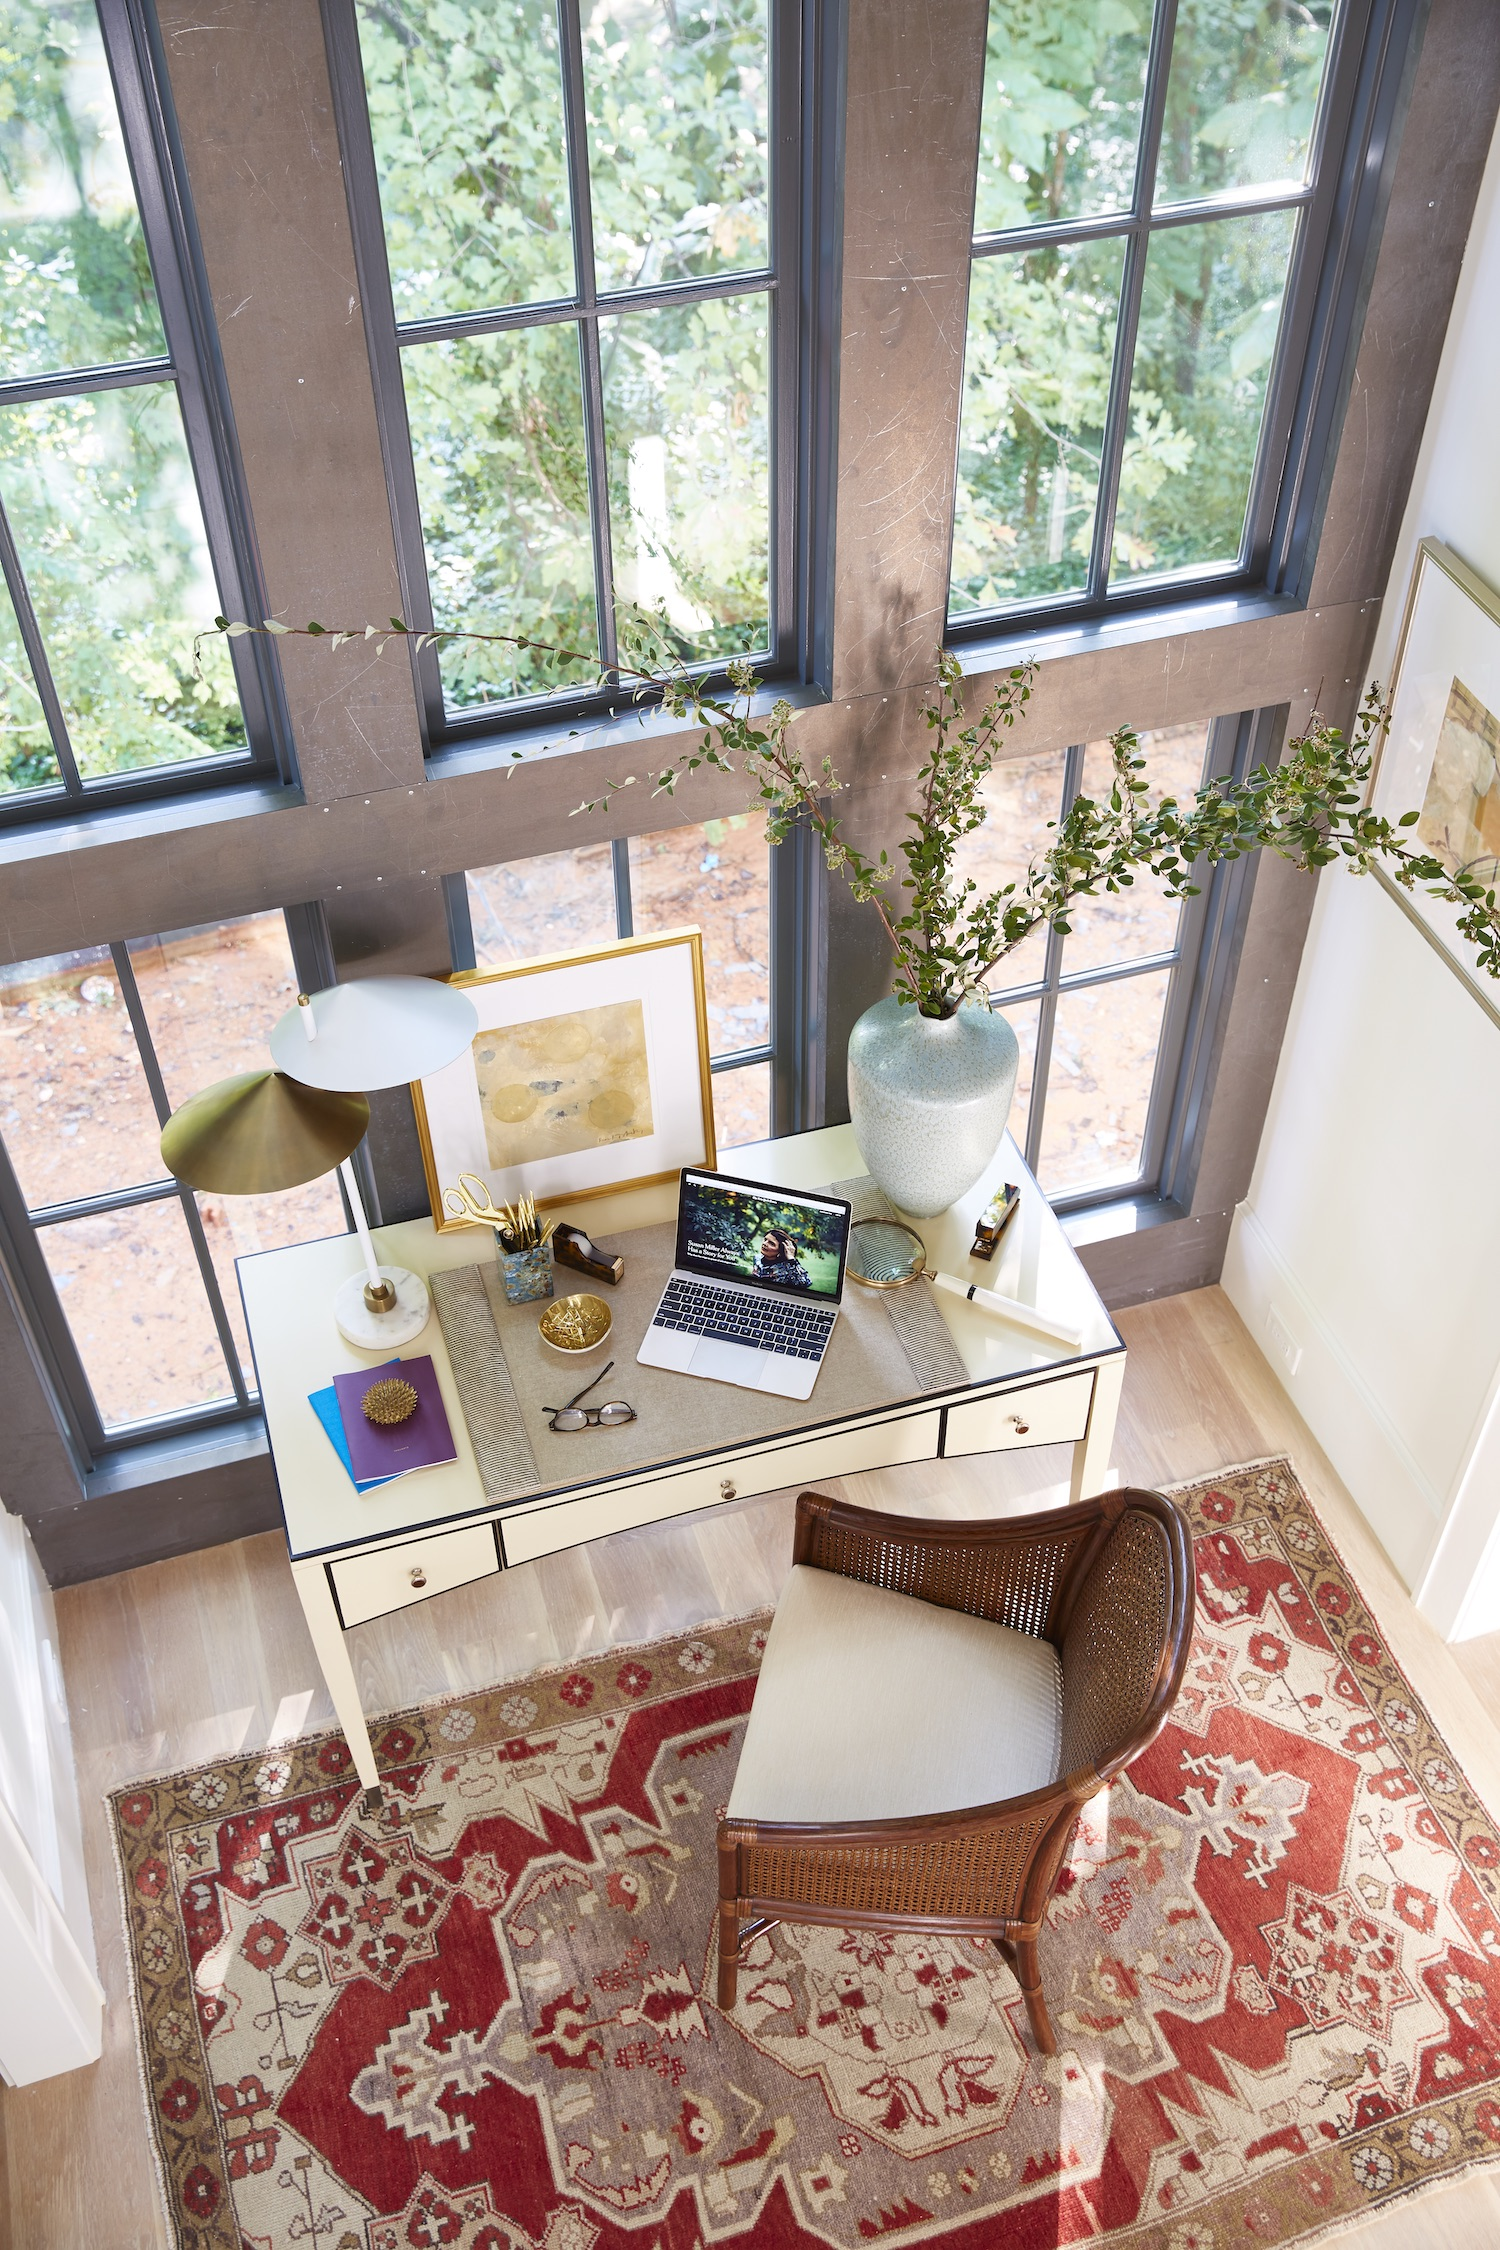 Whole Home Floor to Ceiling Windows in Office.jpg